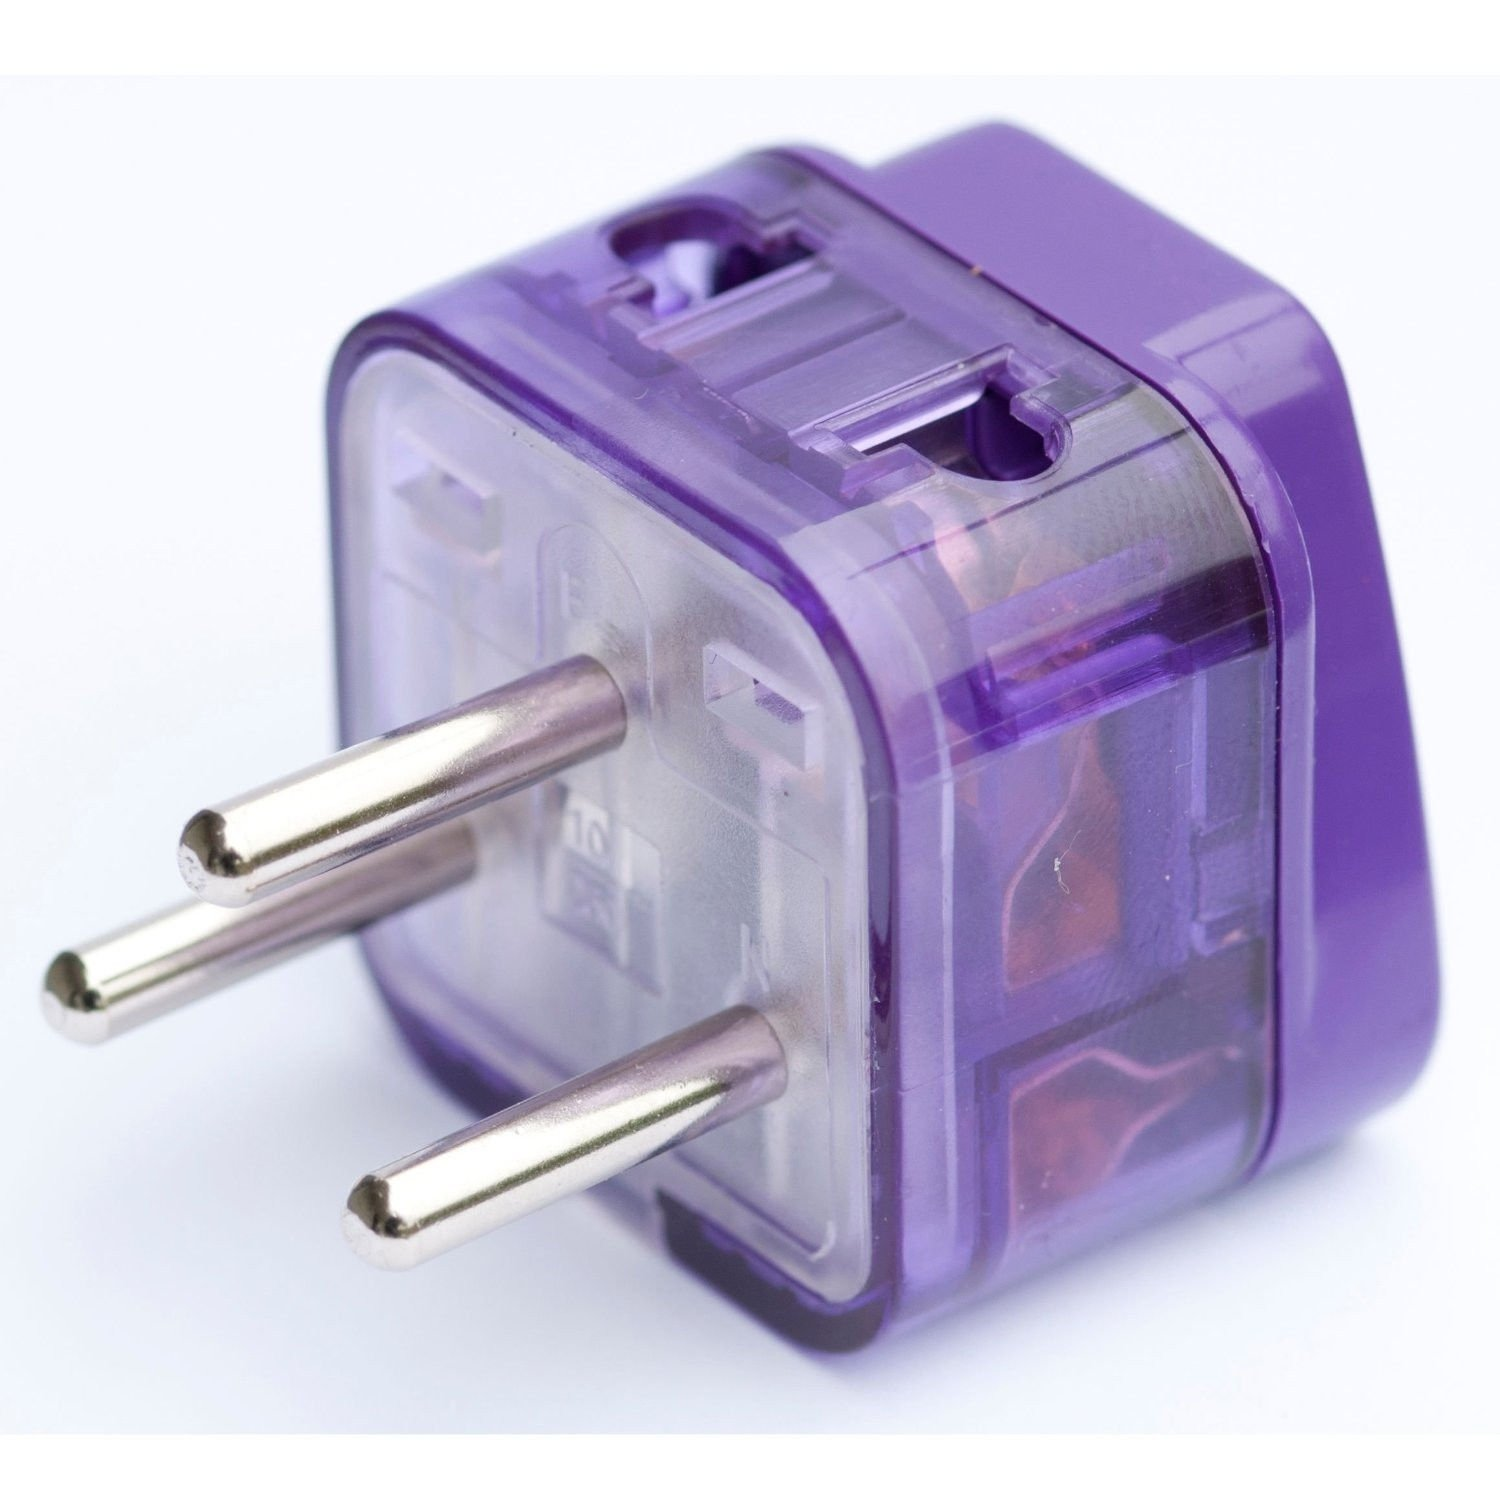 HIGH QUALITY AC POWER TRAVEL ADAPTER PLUG FOR ISRAEL / WITH DUAL PLUG-IN PORTS AND SURGE PROTECTION / GROUNDED